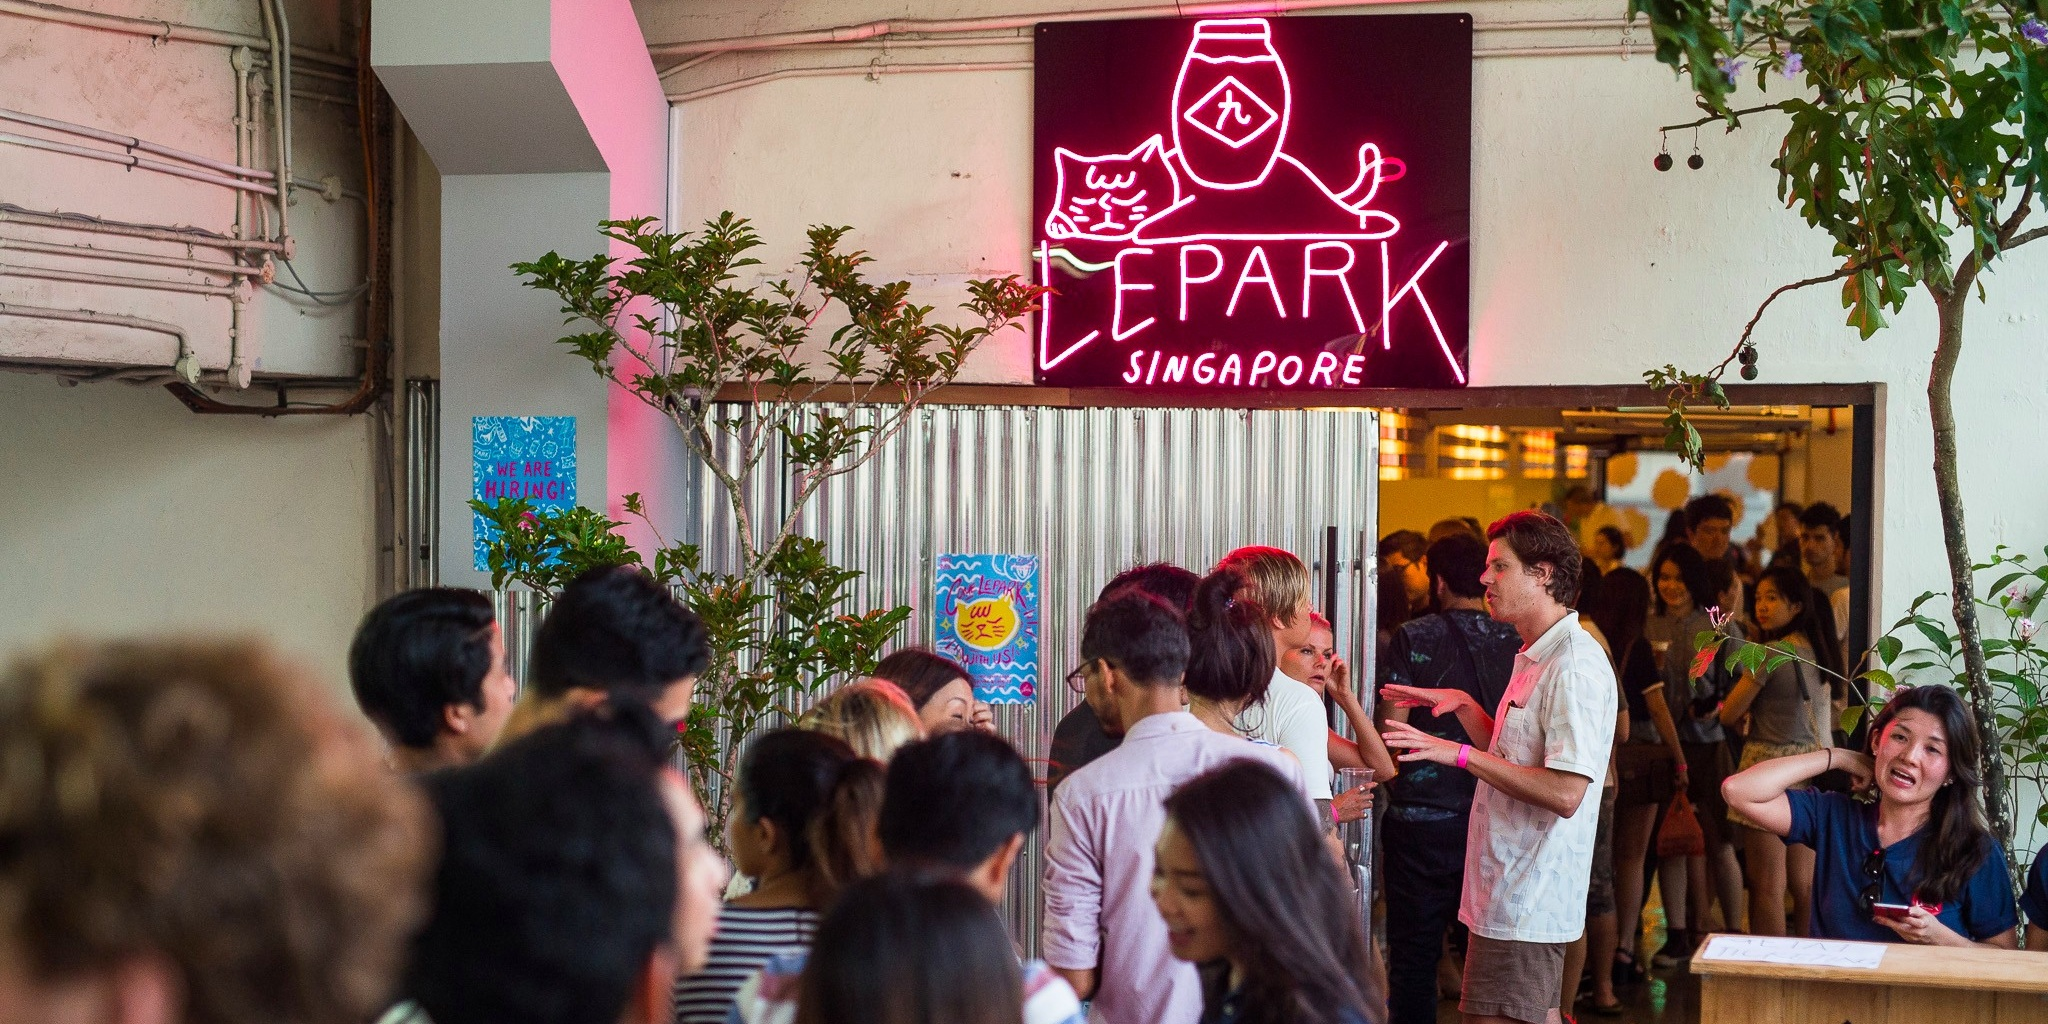 Lepark closing its doors at the end of September